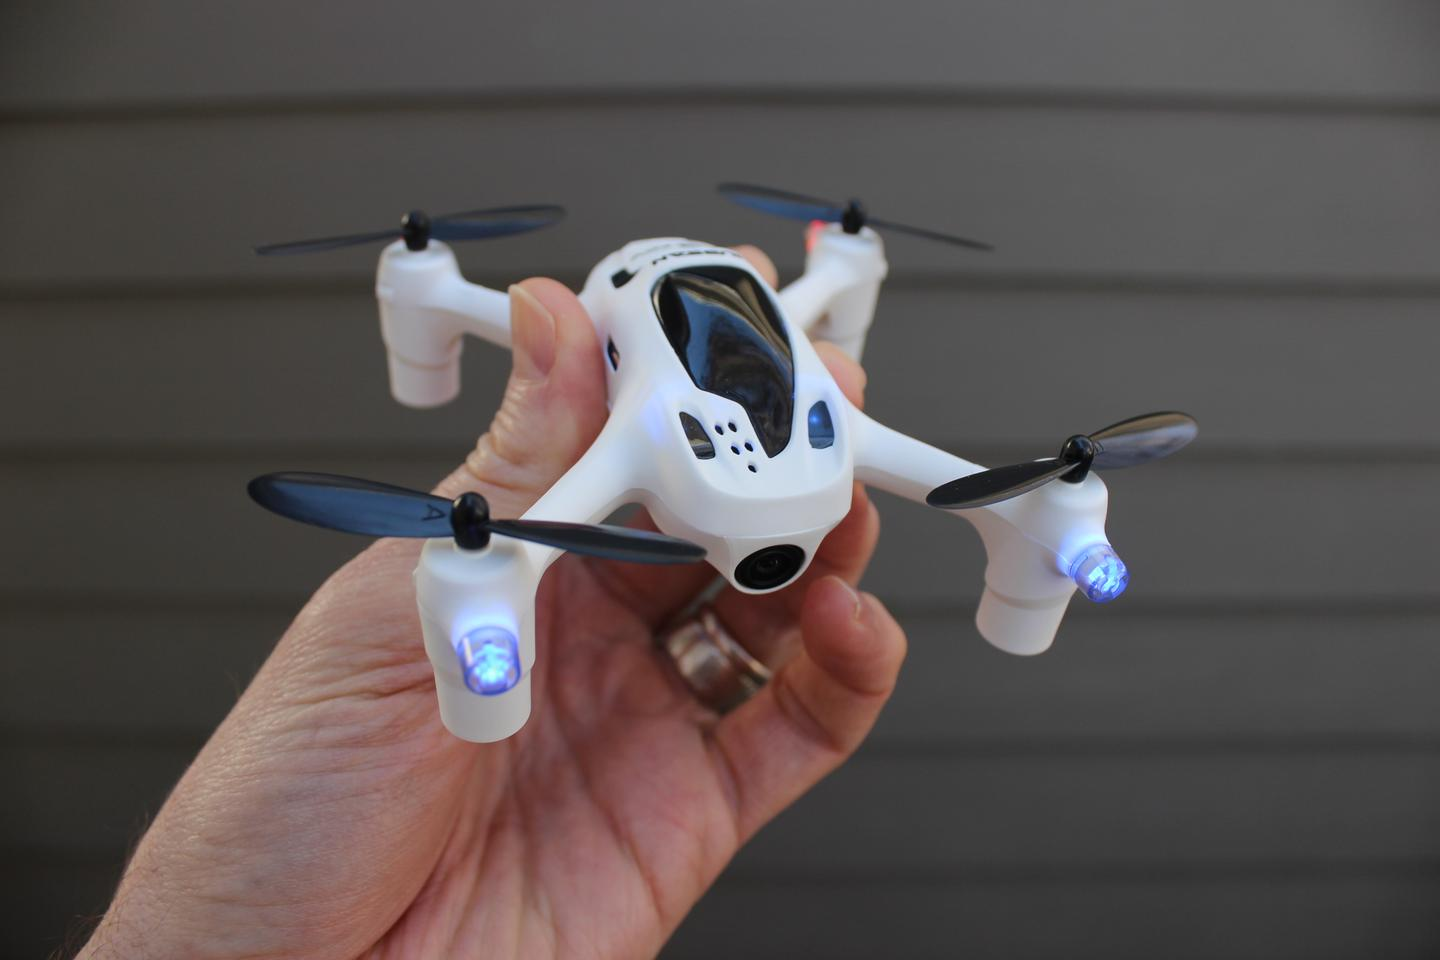 Gizmag tries out the Hubsan FPV X4 Plus